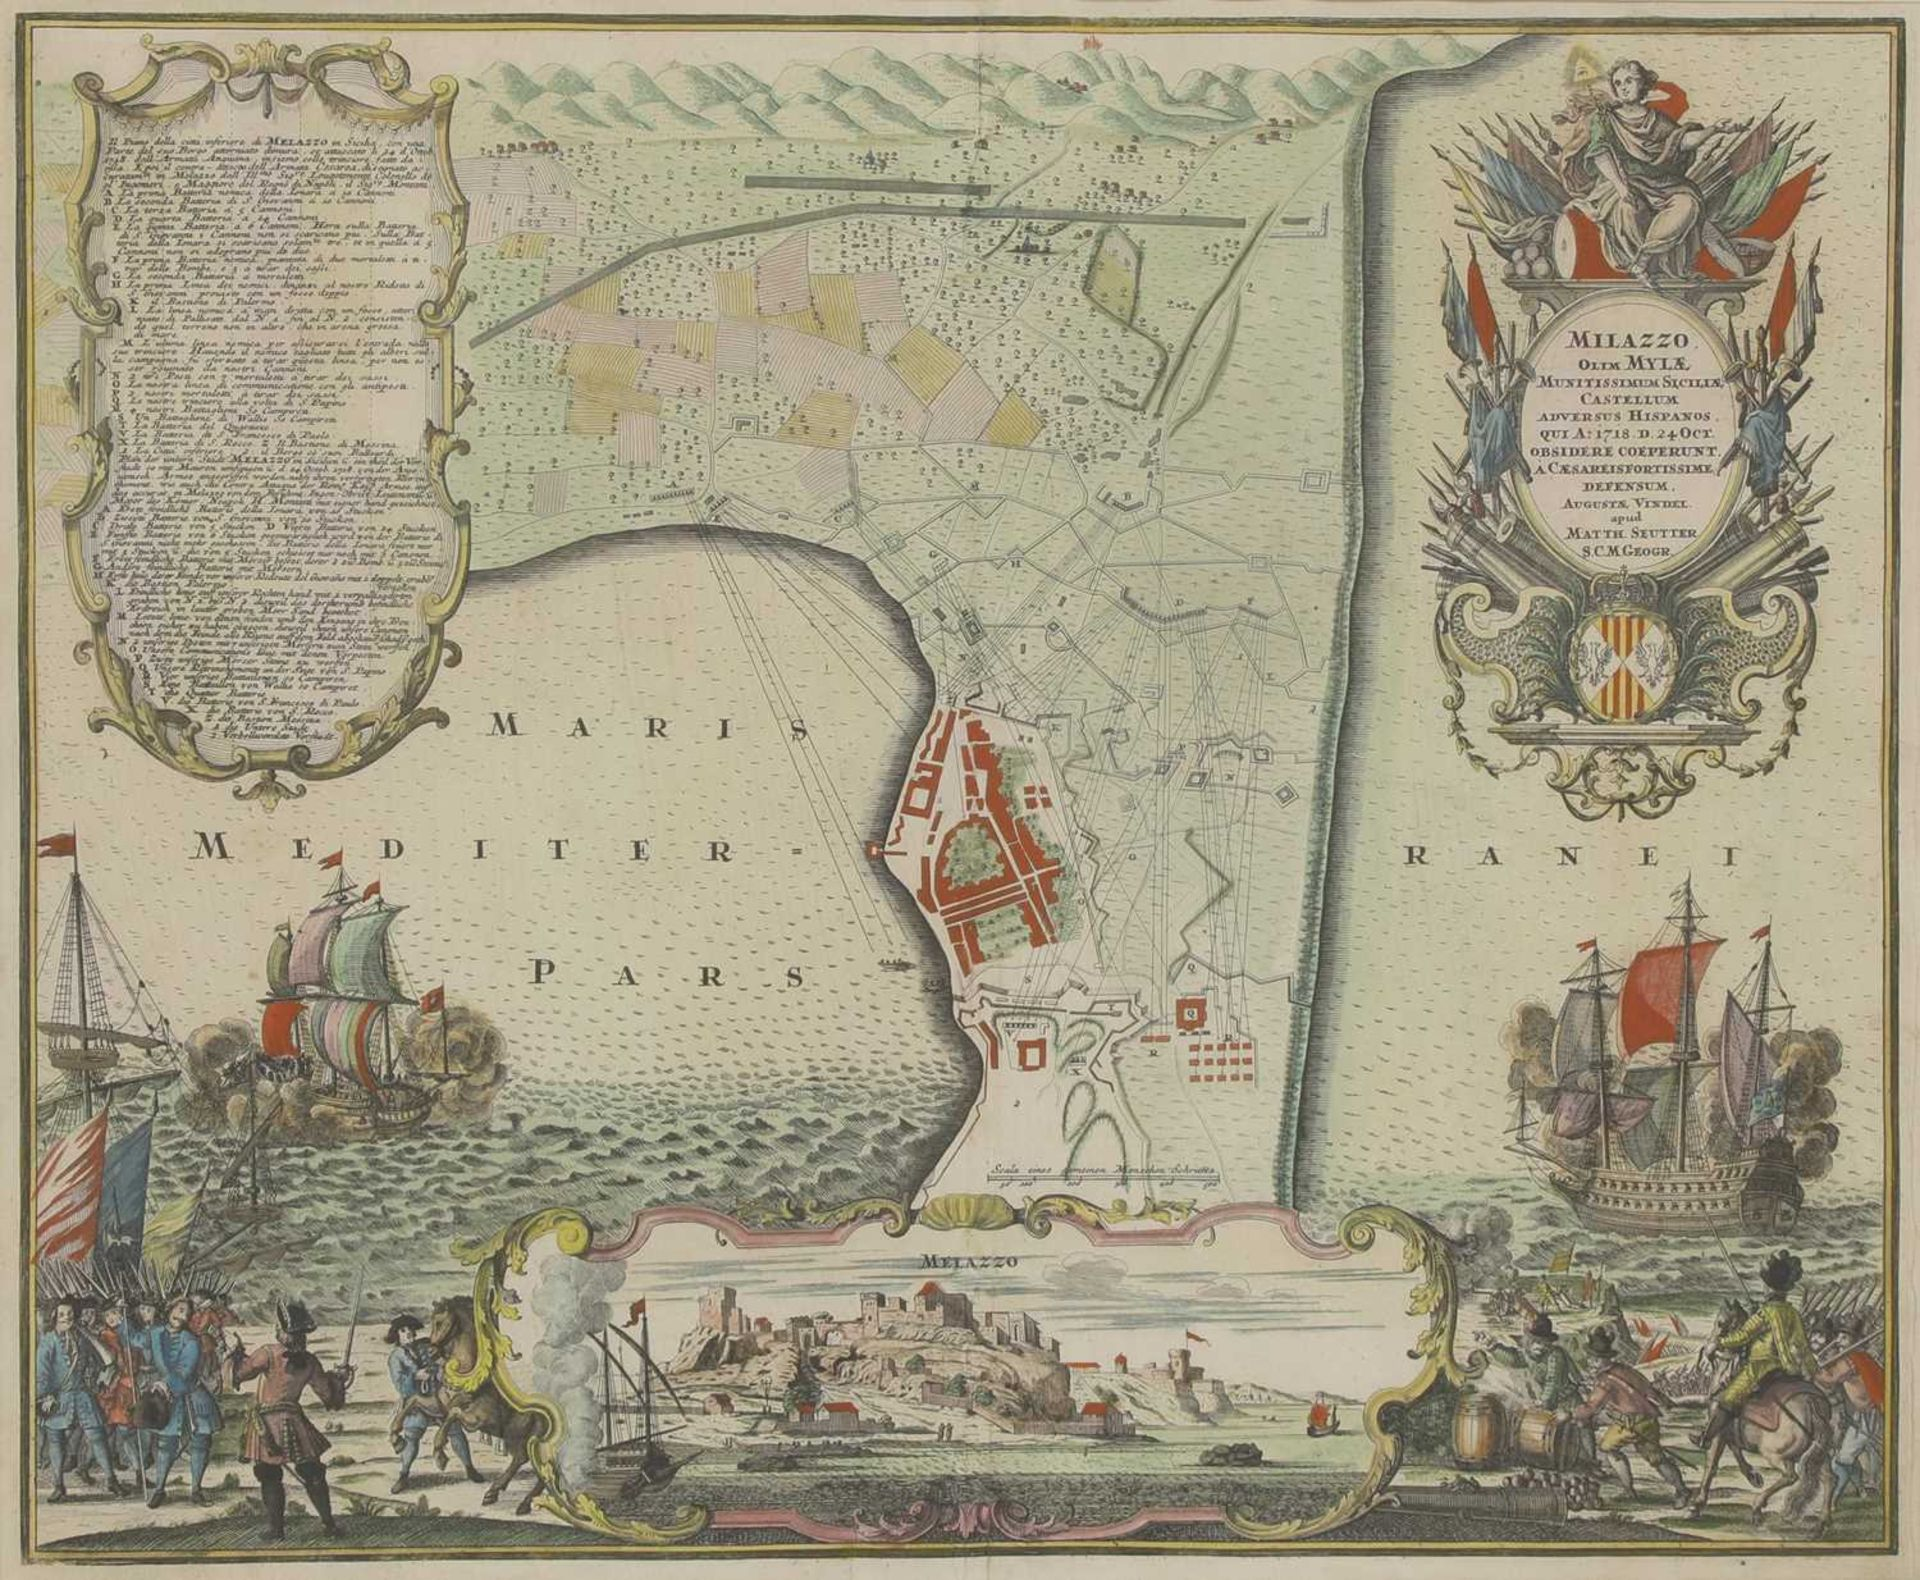 'Milazzo...Sicilia', a hand-coloured map dated 24 Oct, 1718,